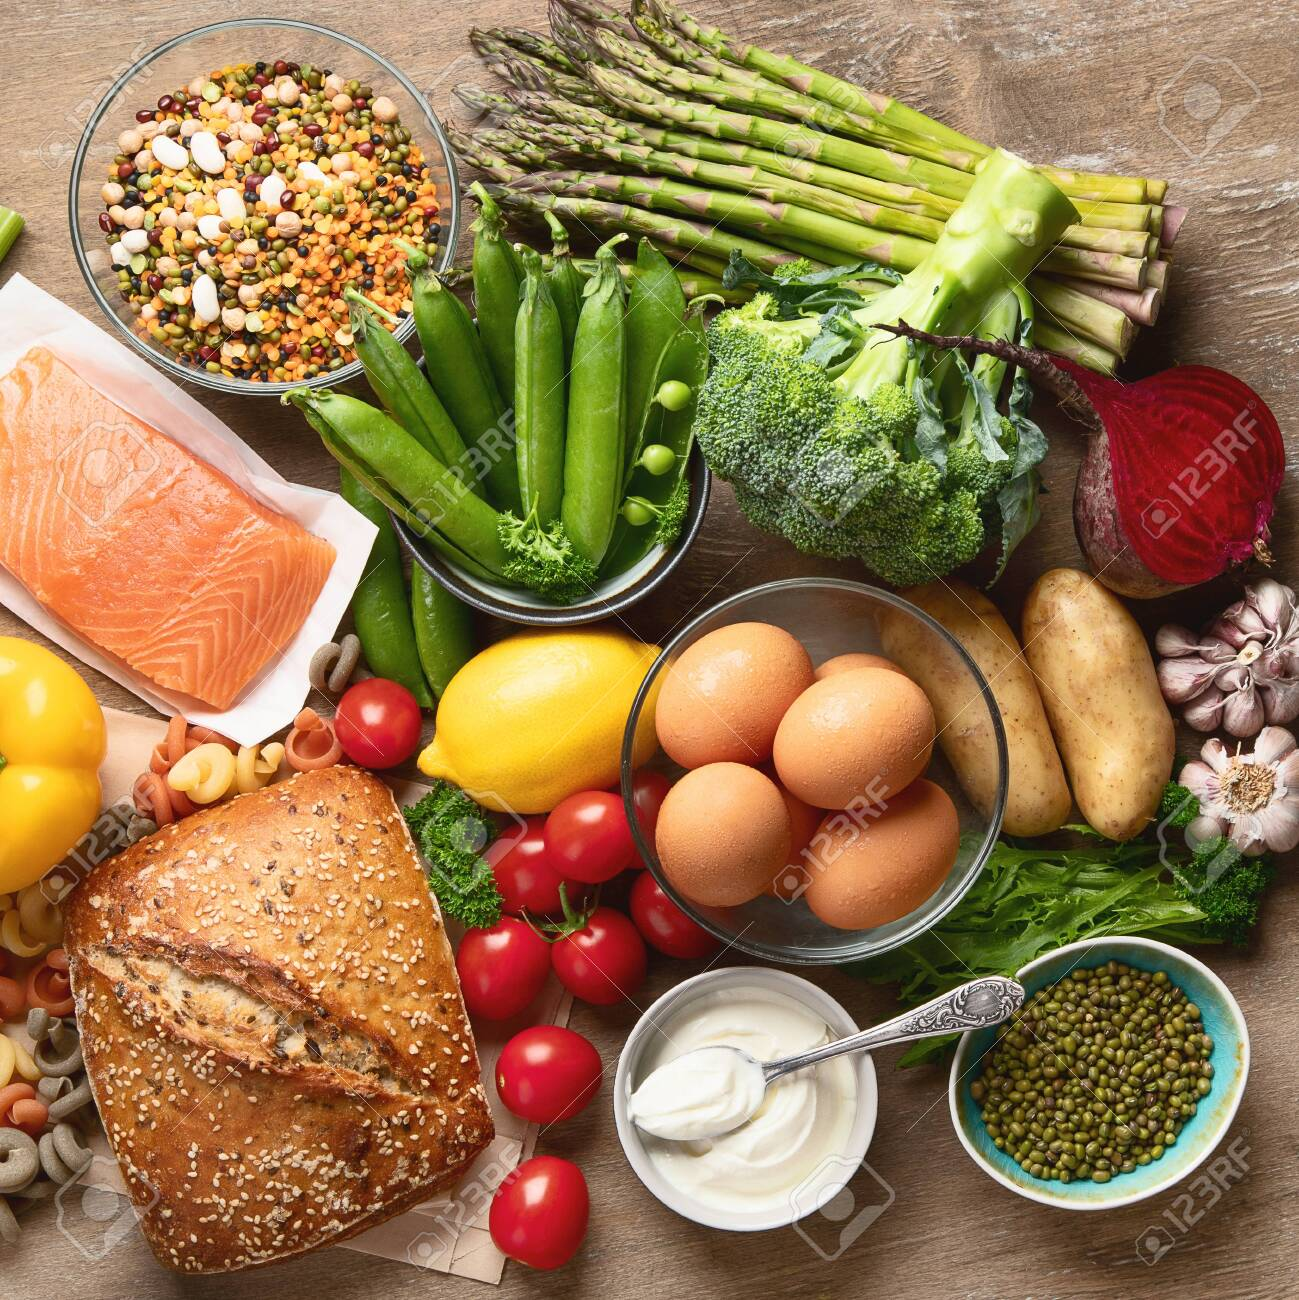 Healthy Food Balanced Food Cooking Ingredients Clean Diet Eating Stock Photo Picture And Royalty Free Image Image 128183106